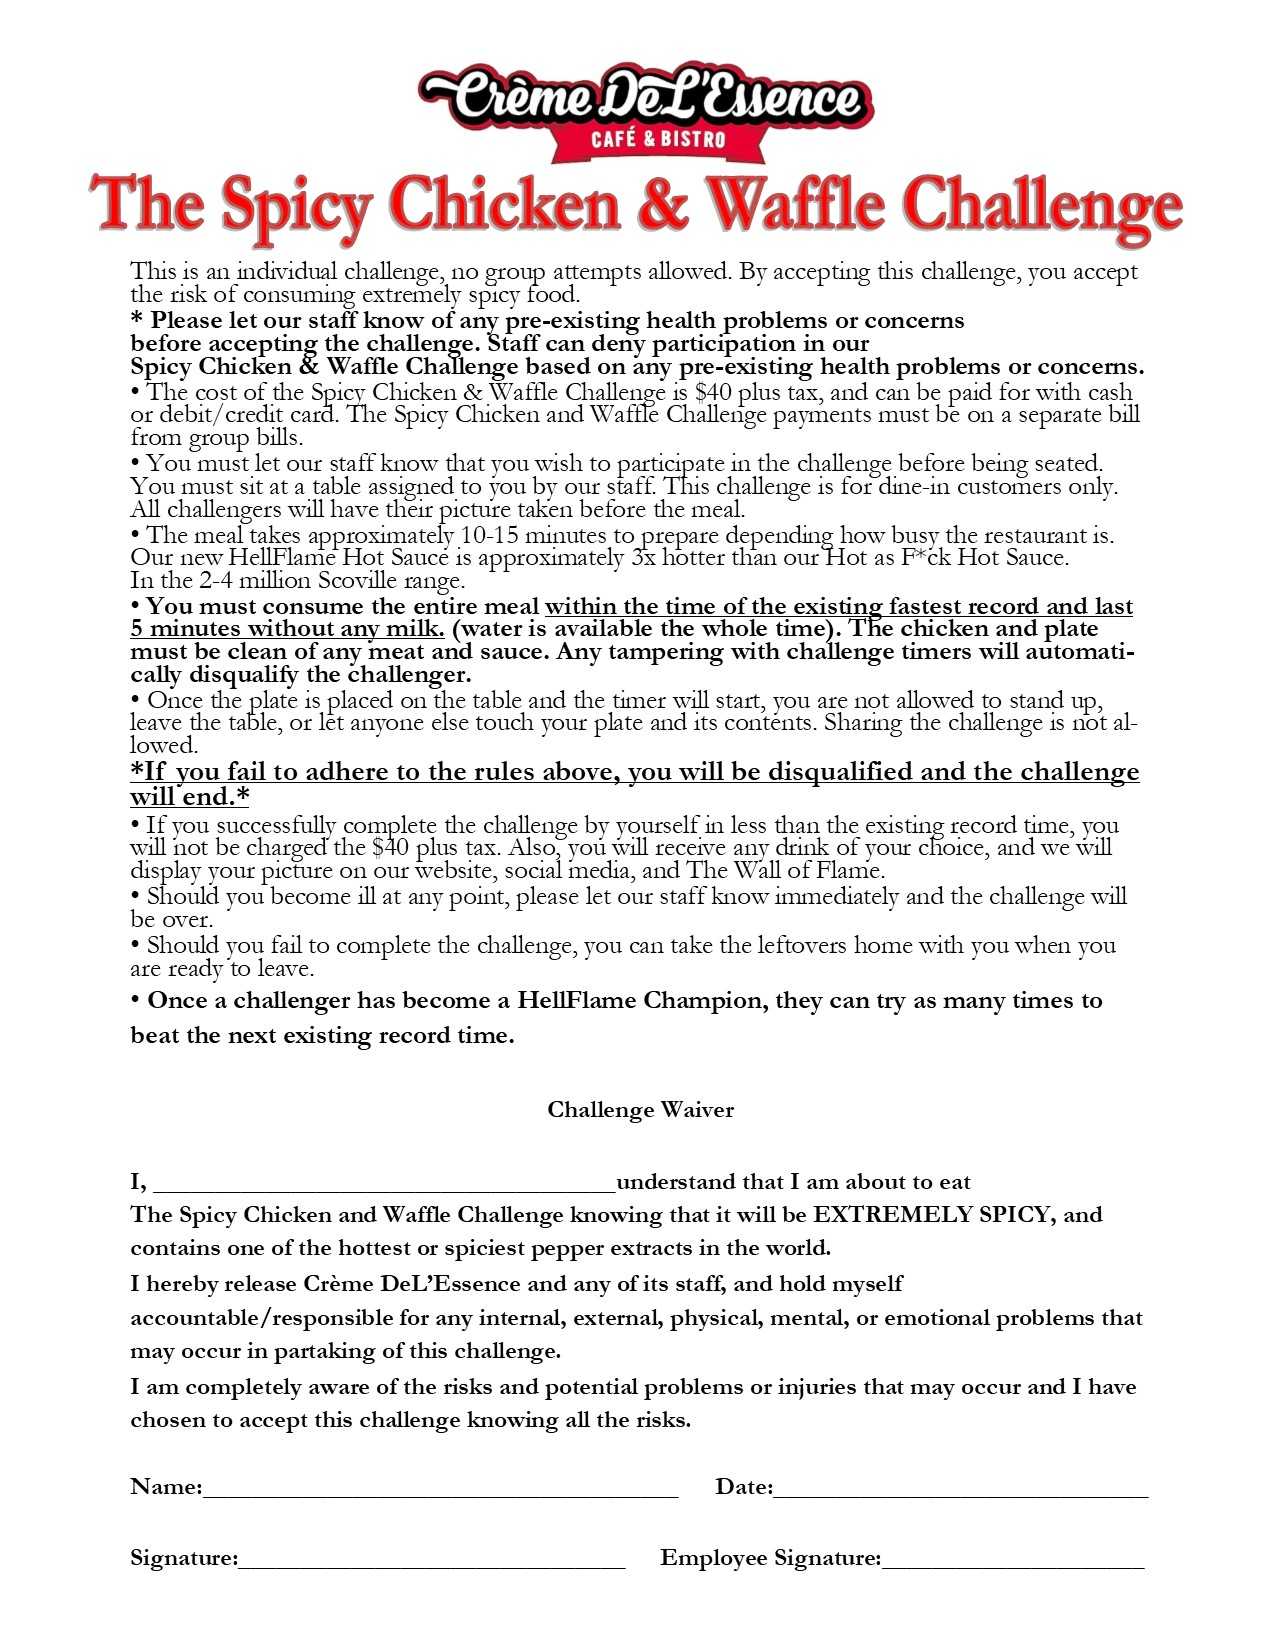 spicy chicken and waffle challenge.jpg